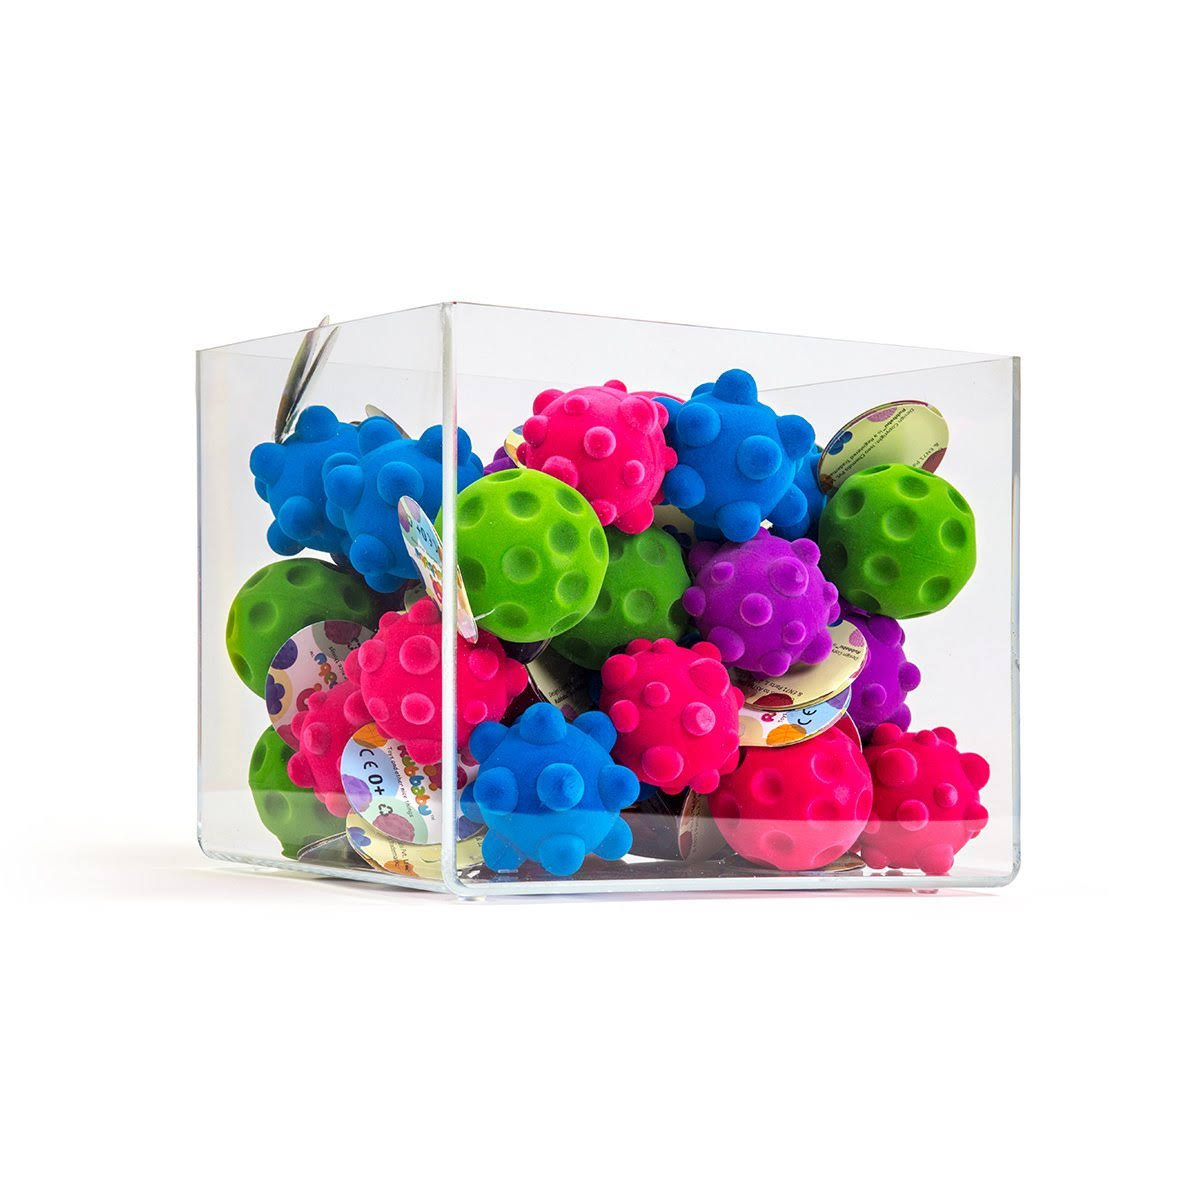 "Rubbabu 2.5"" Mini Fidget Balls Assorted Styles"